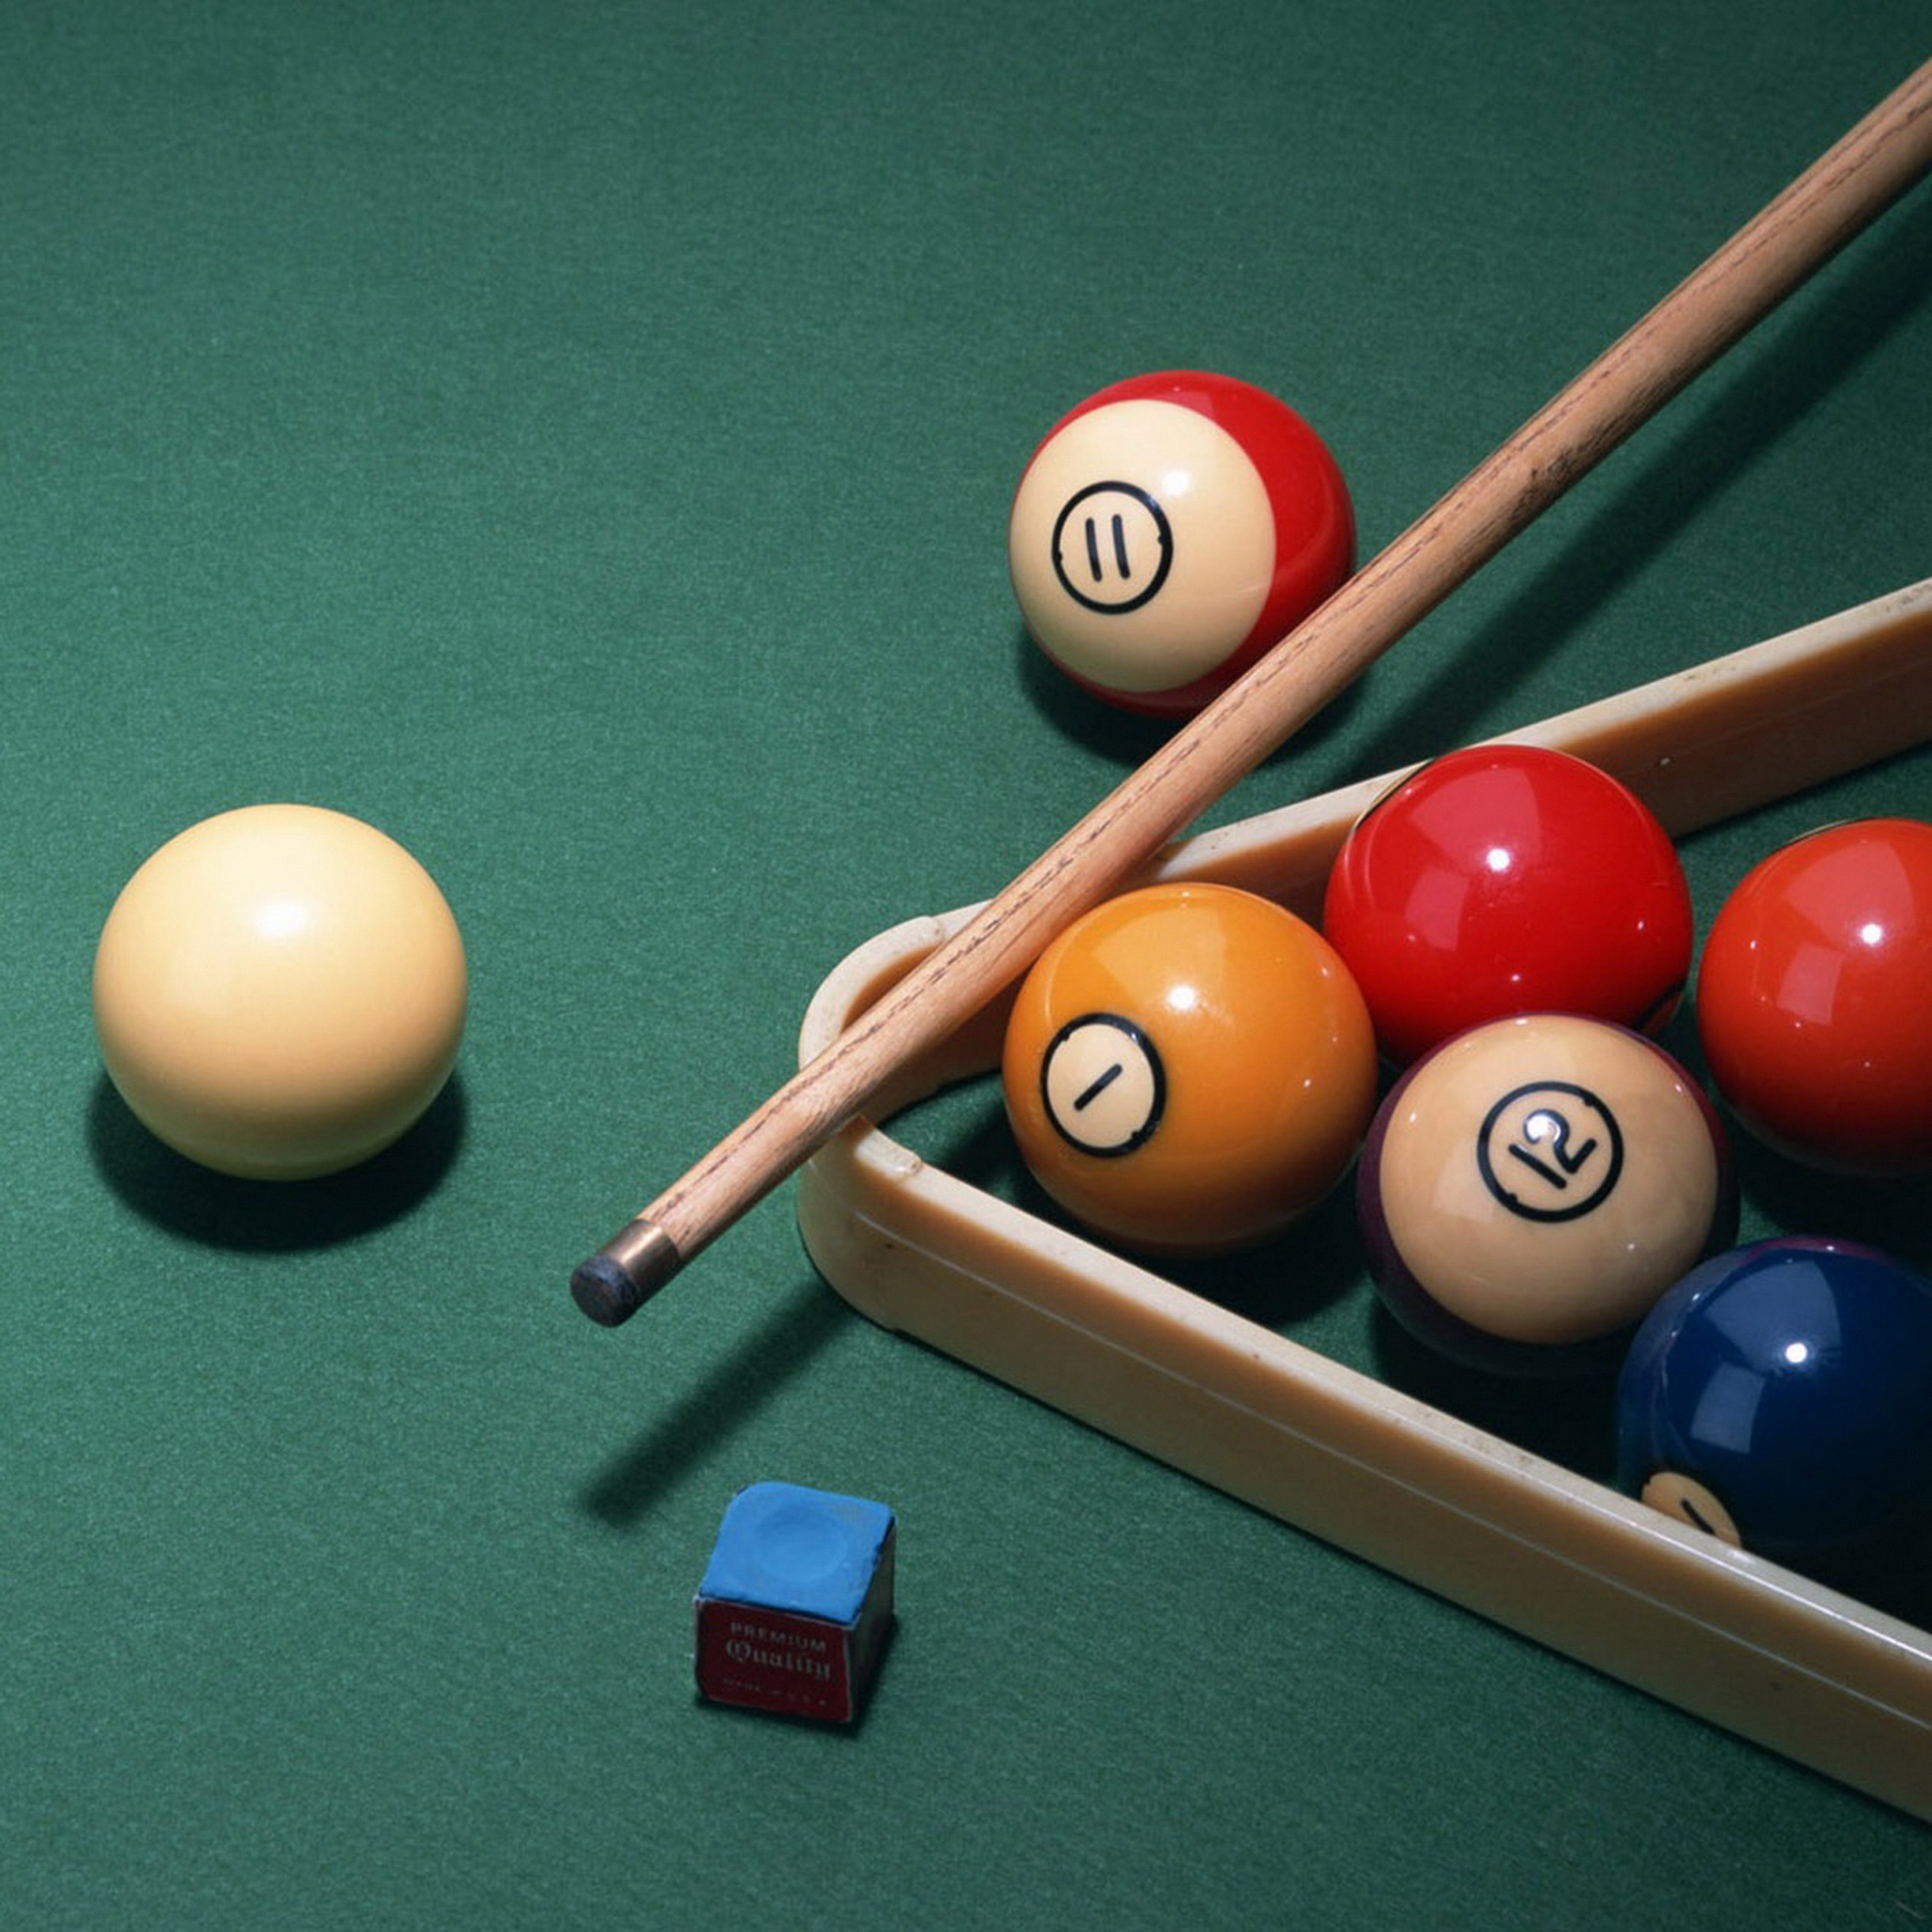 Billard 3Wallpapers iPad Retina Billard   iPad Retina